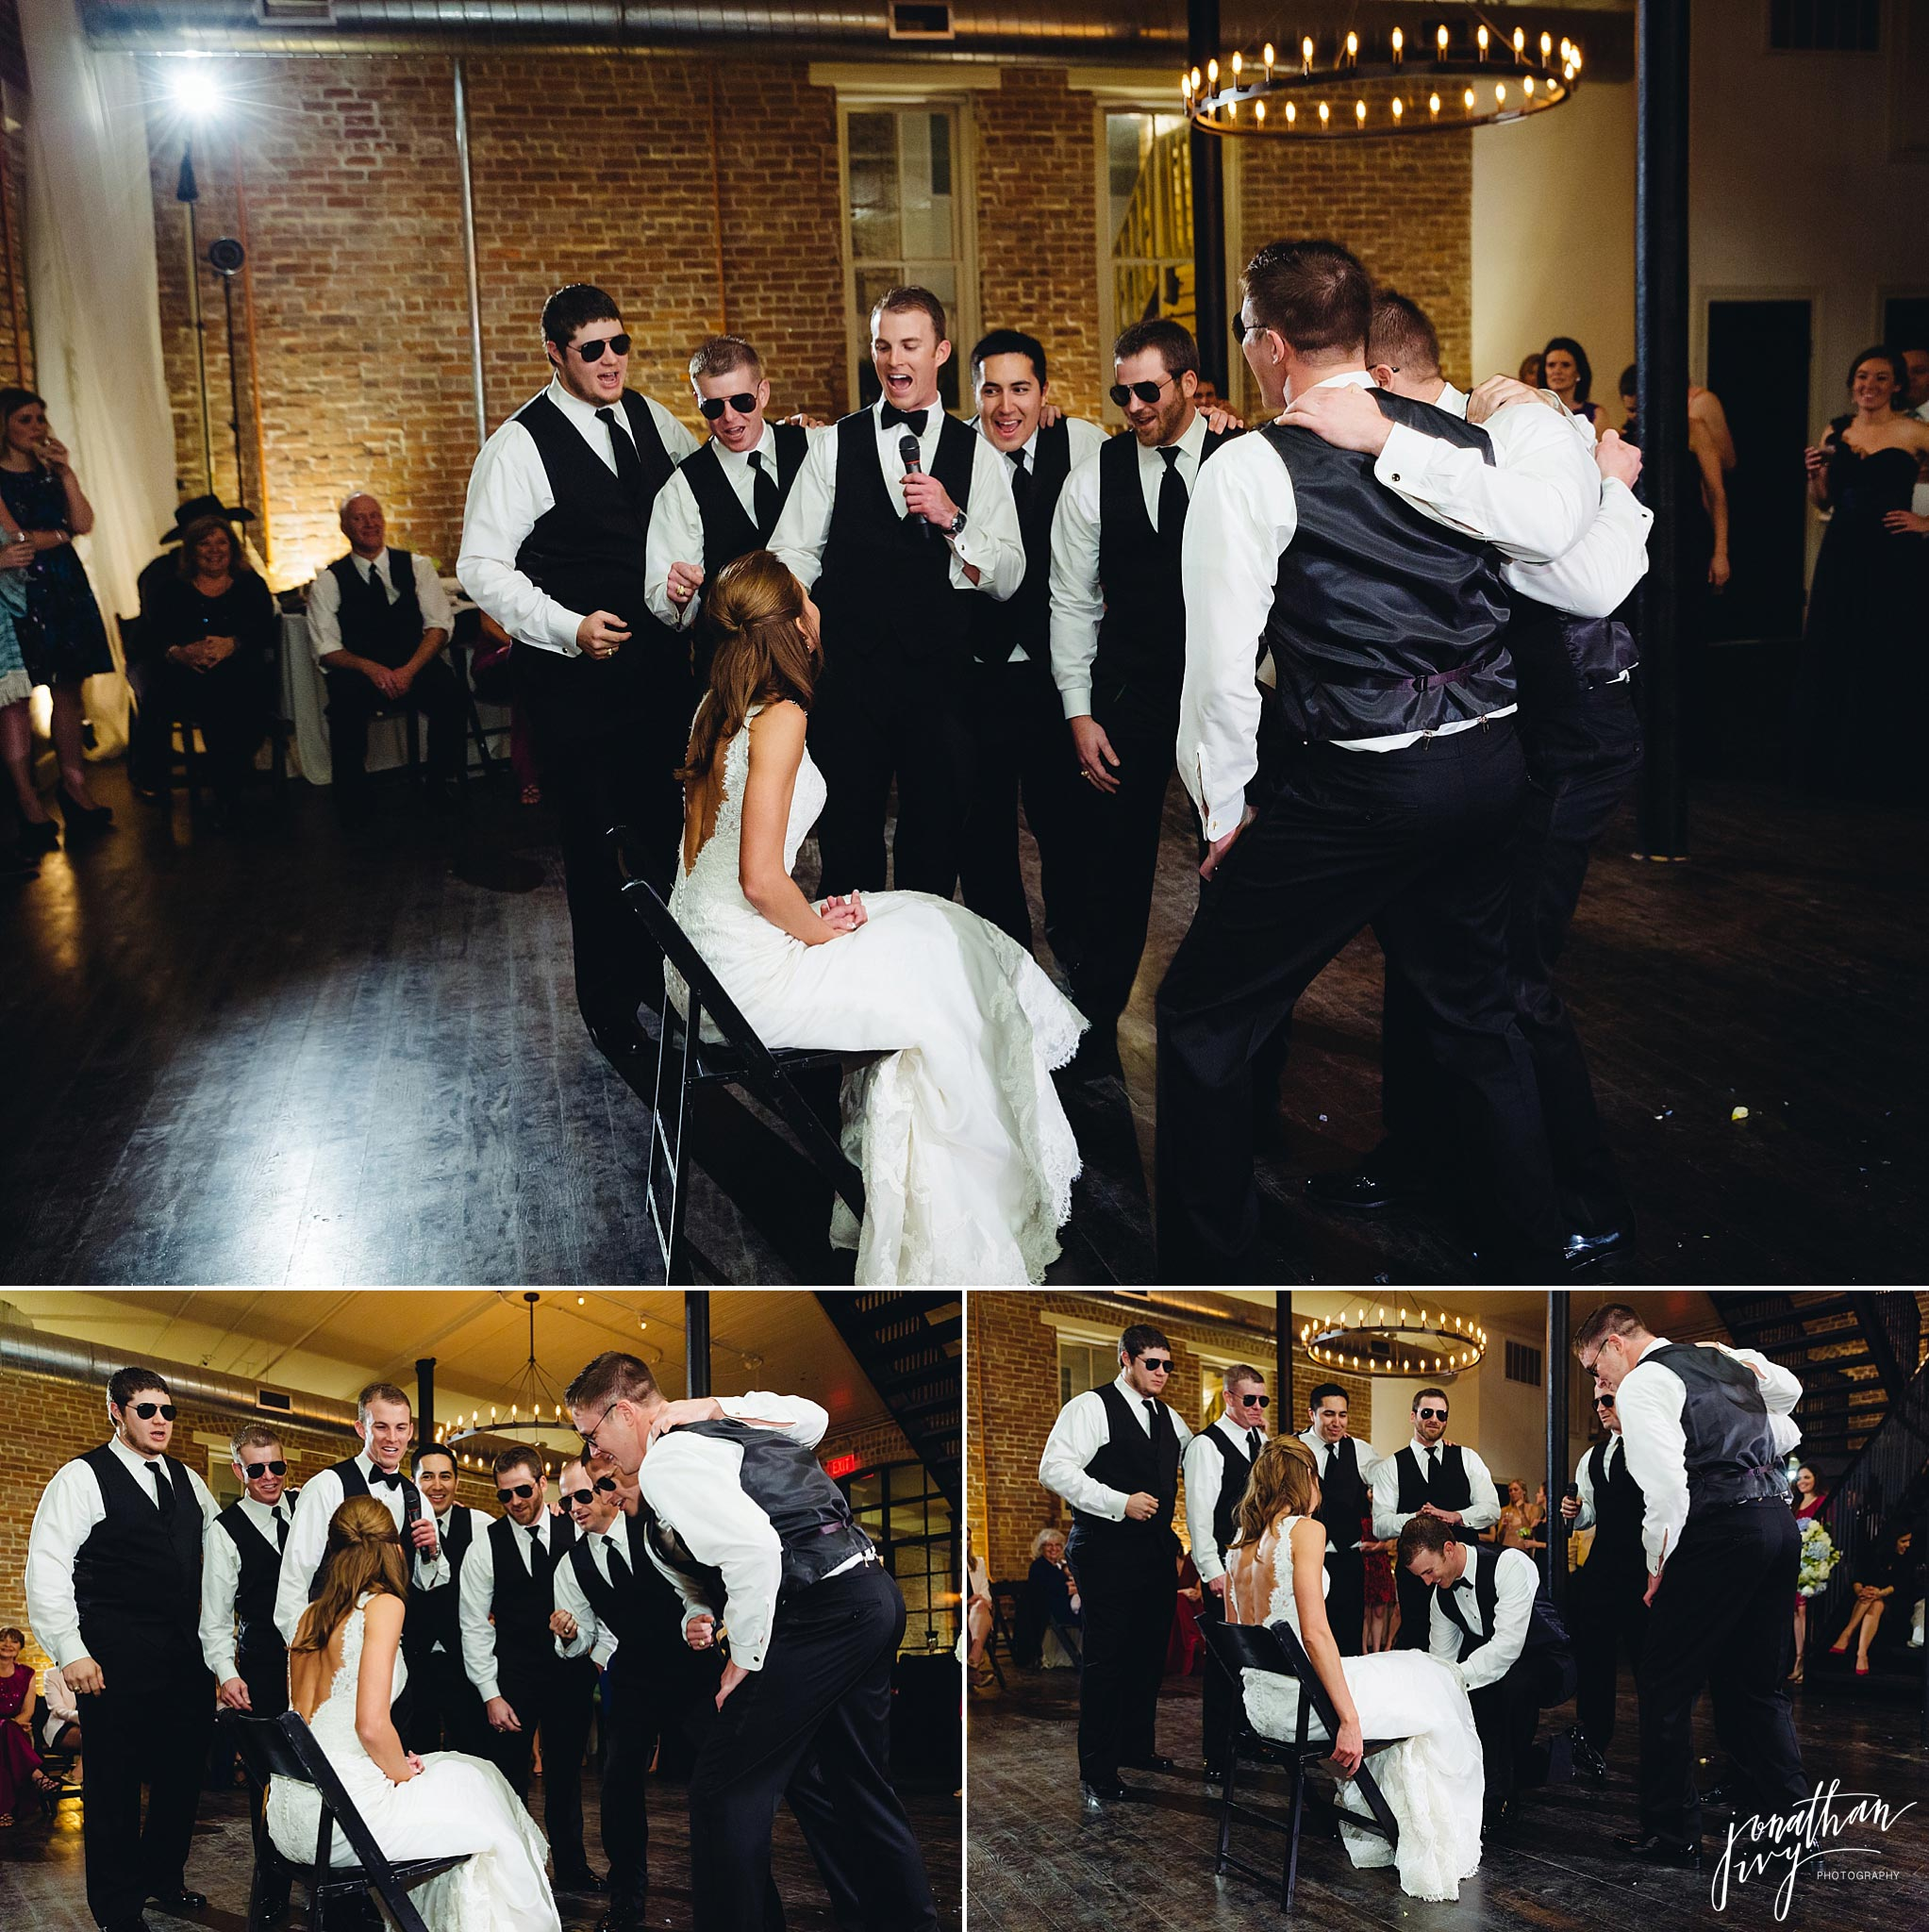 Groomsmen singing to bride at reception